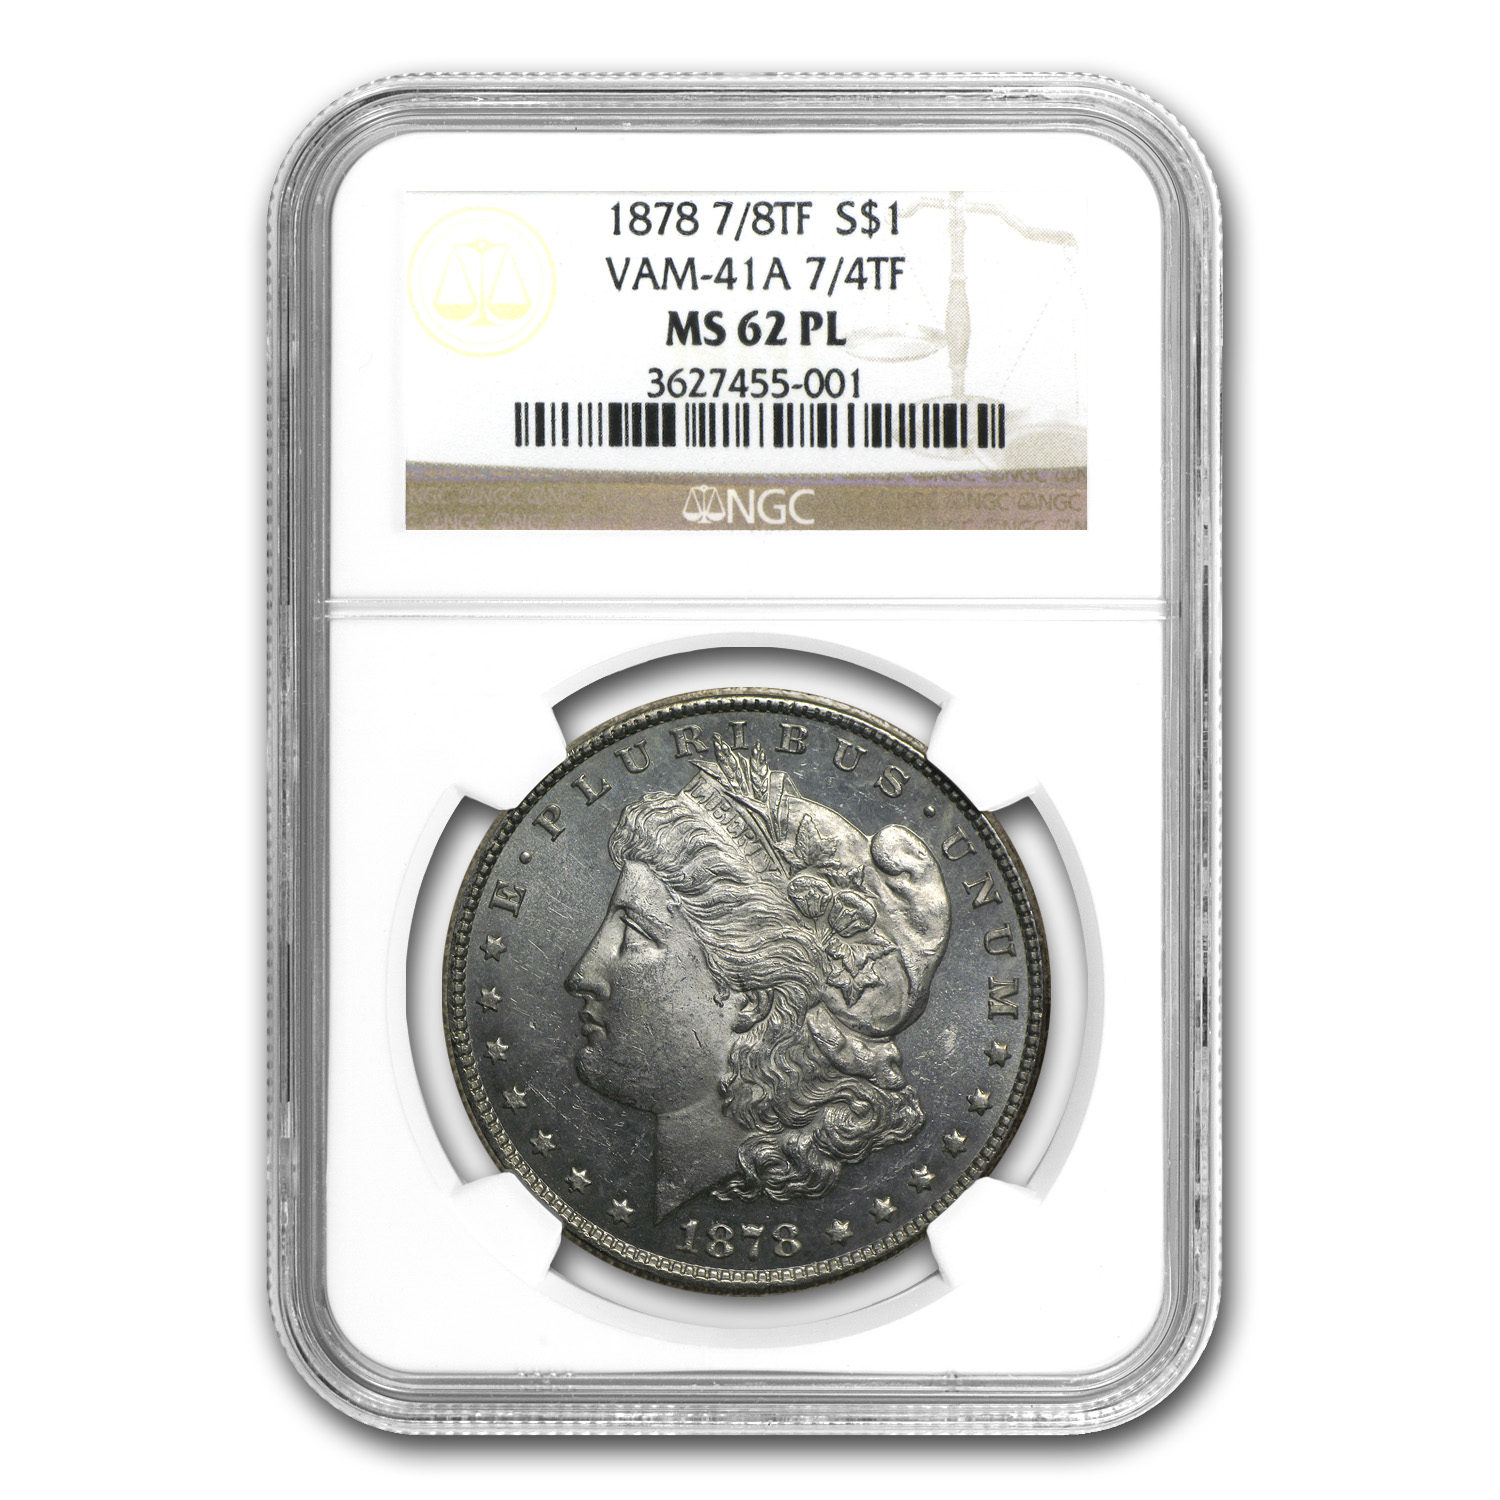 1878 Morgan Dollar 7/4 TF MS-62 PL NGC (VAM-41A)